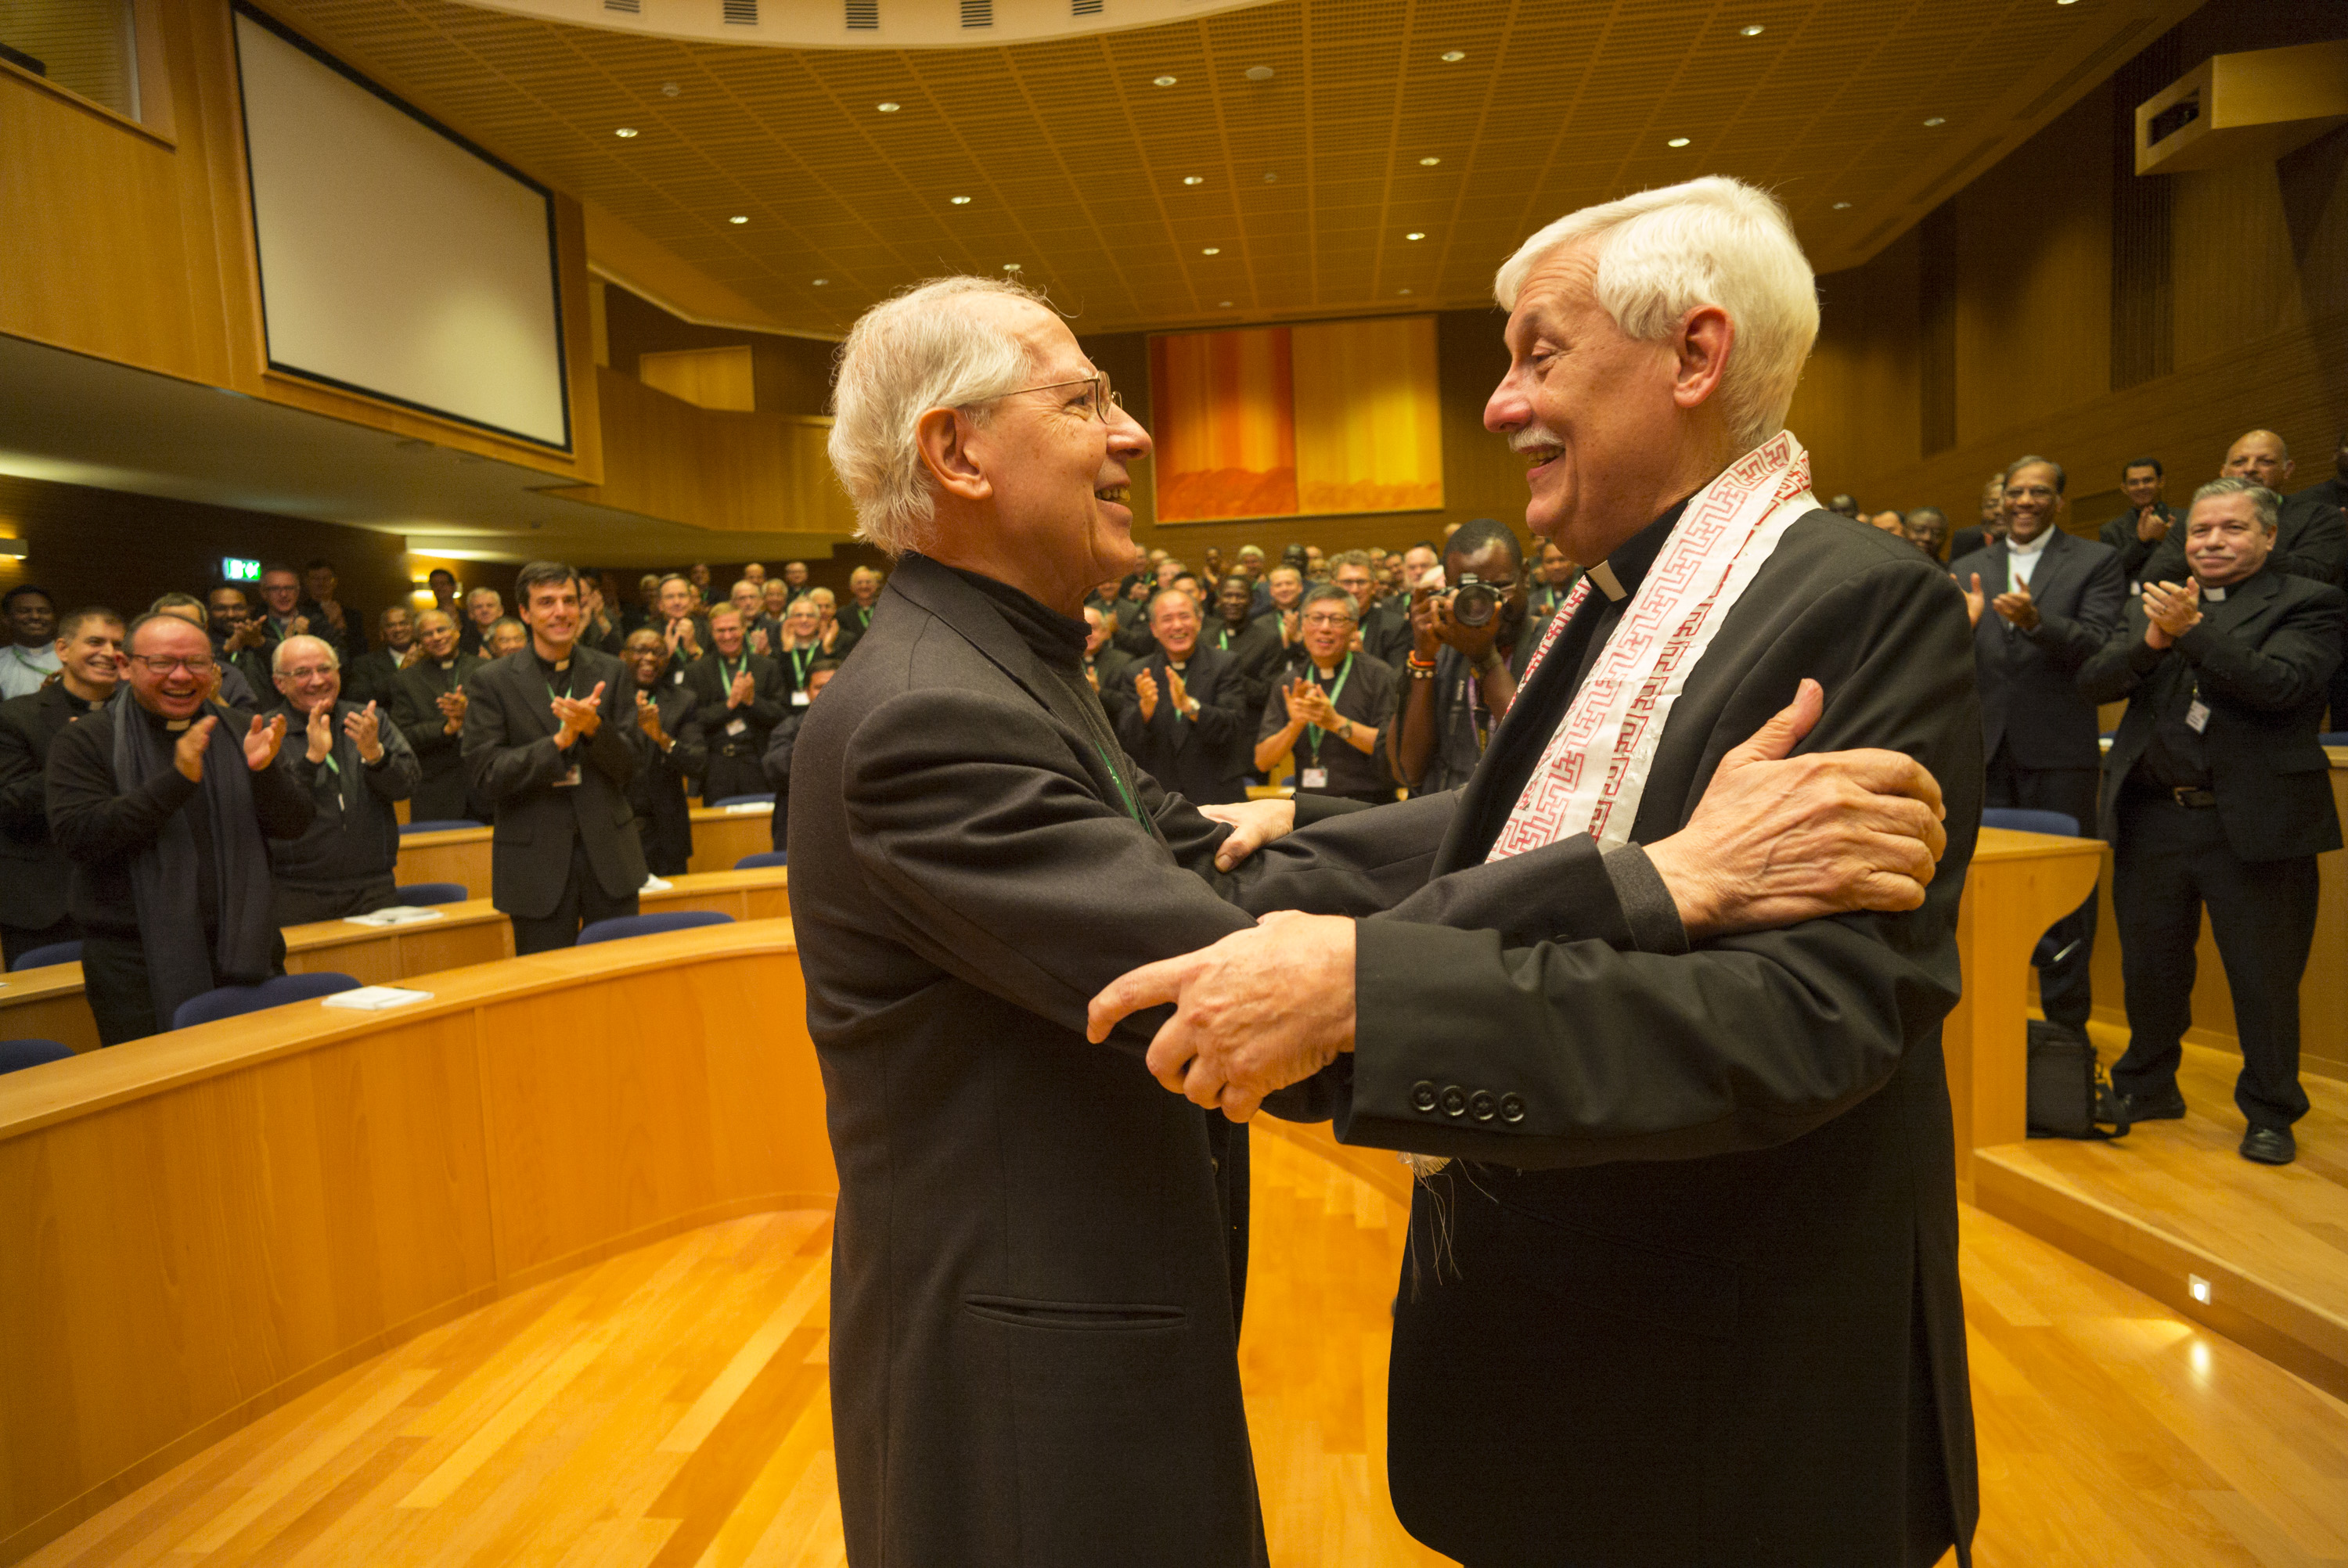 GC36 election of Fr. Arturo Sosa, of Venezuela, as Superior General of the Society of Jesus in the Aula by the Jesuits gathered from around the world.